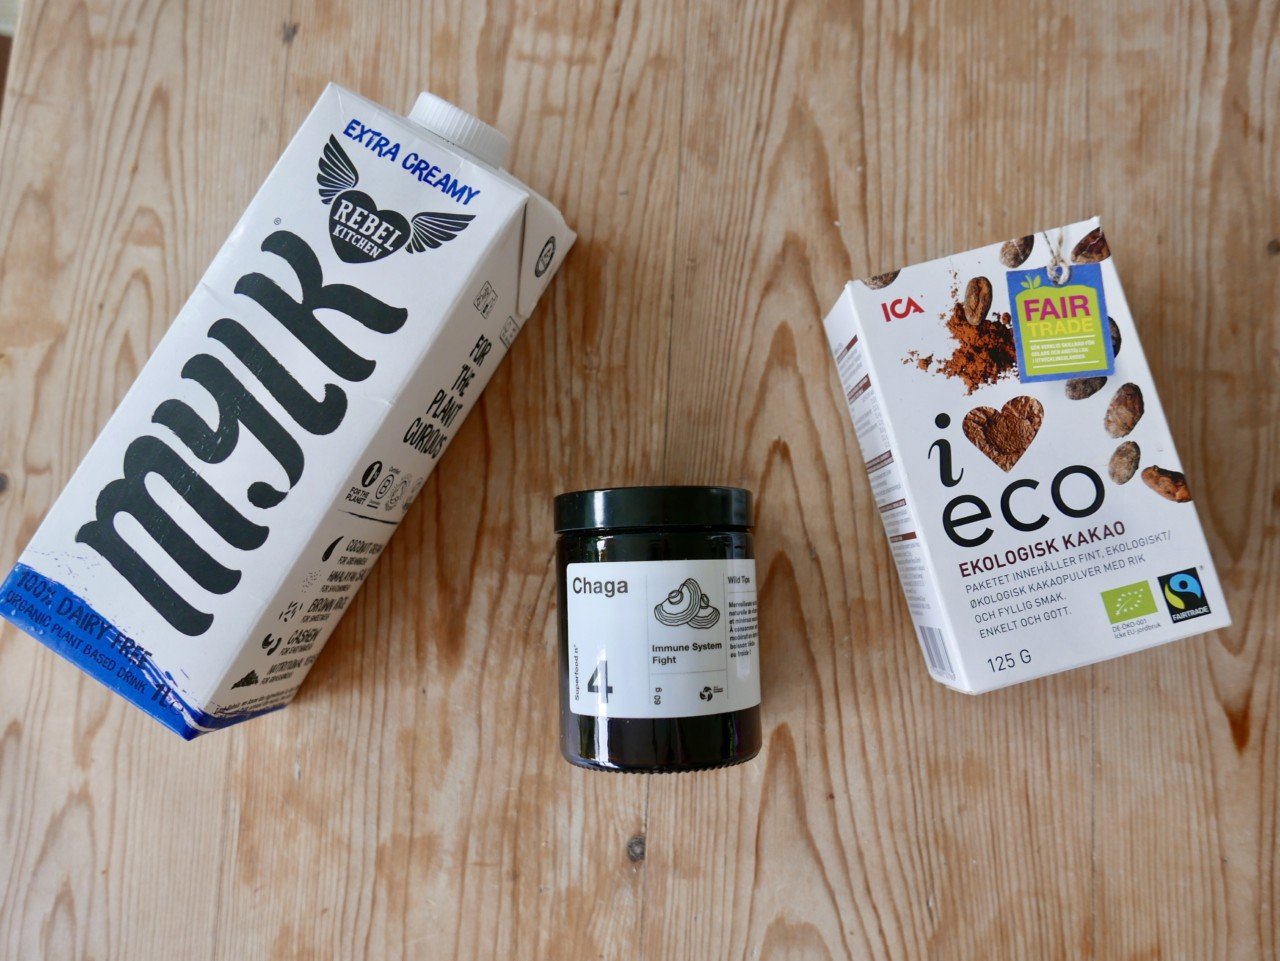 rebel-kitchen-mylk-extra-creamy-fairtrade-okologisk-kakao-chaga